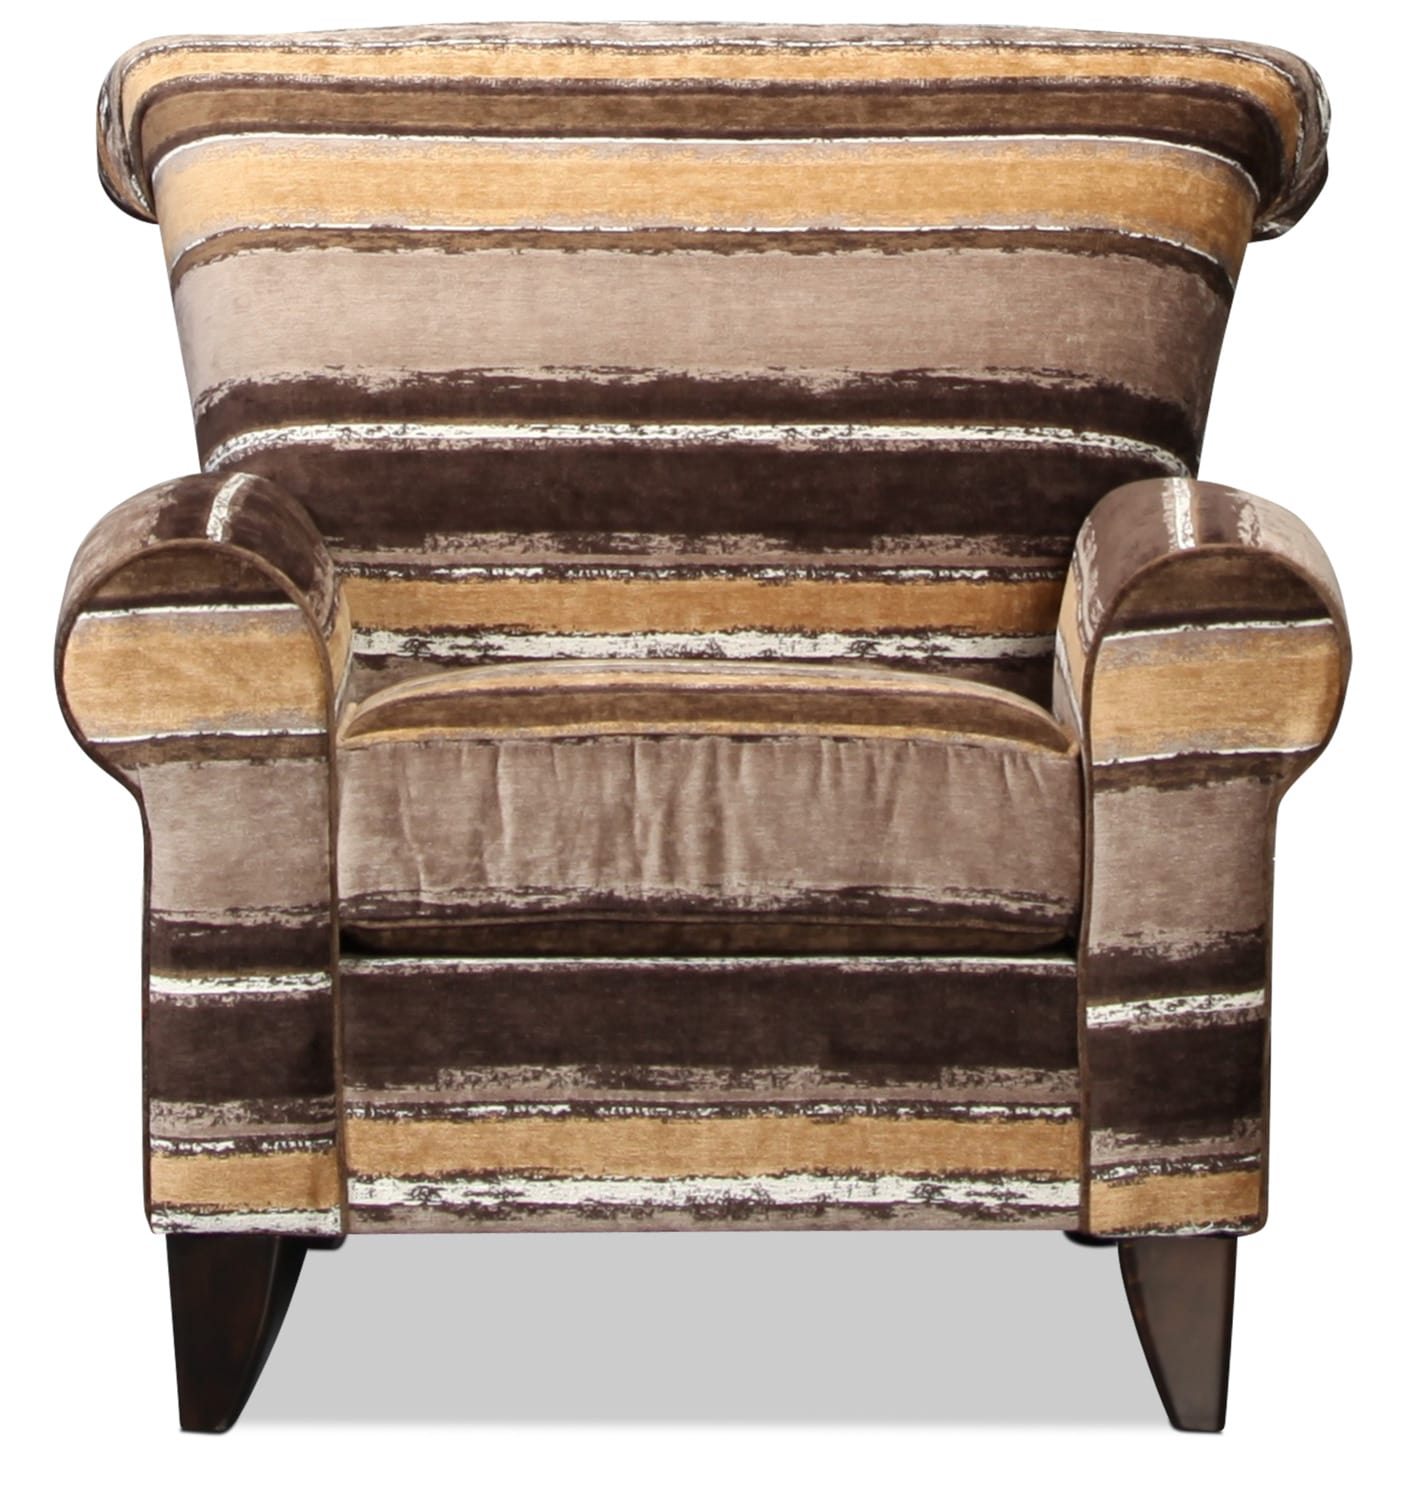 Serendipity Accent Chair - Striped